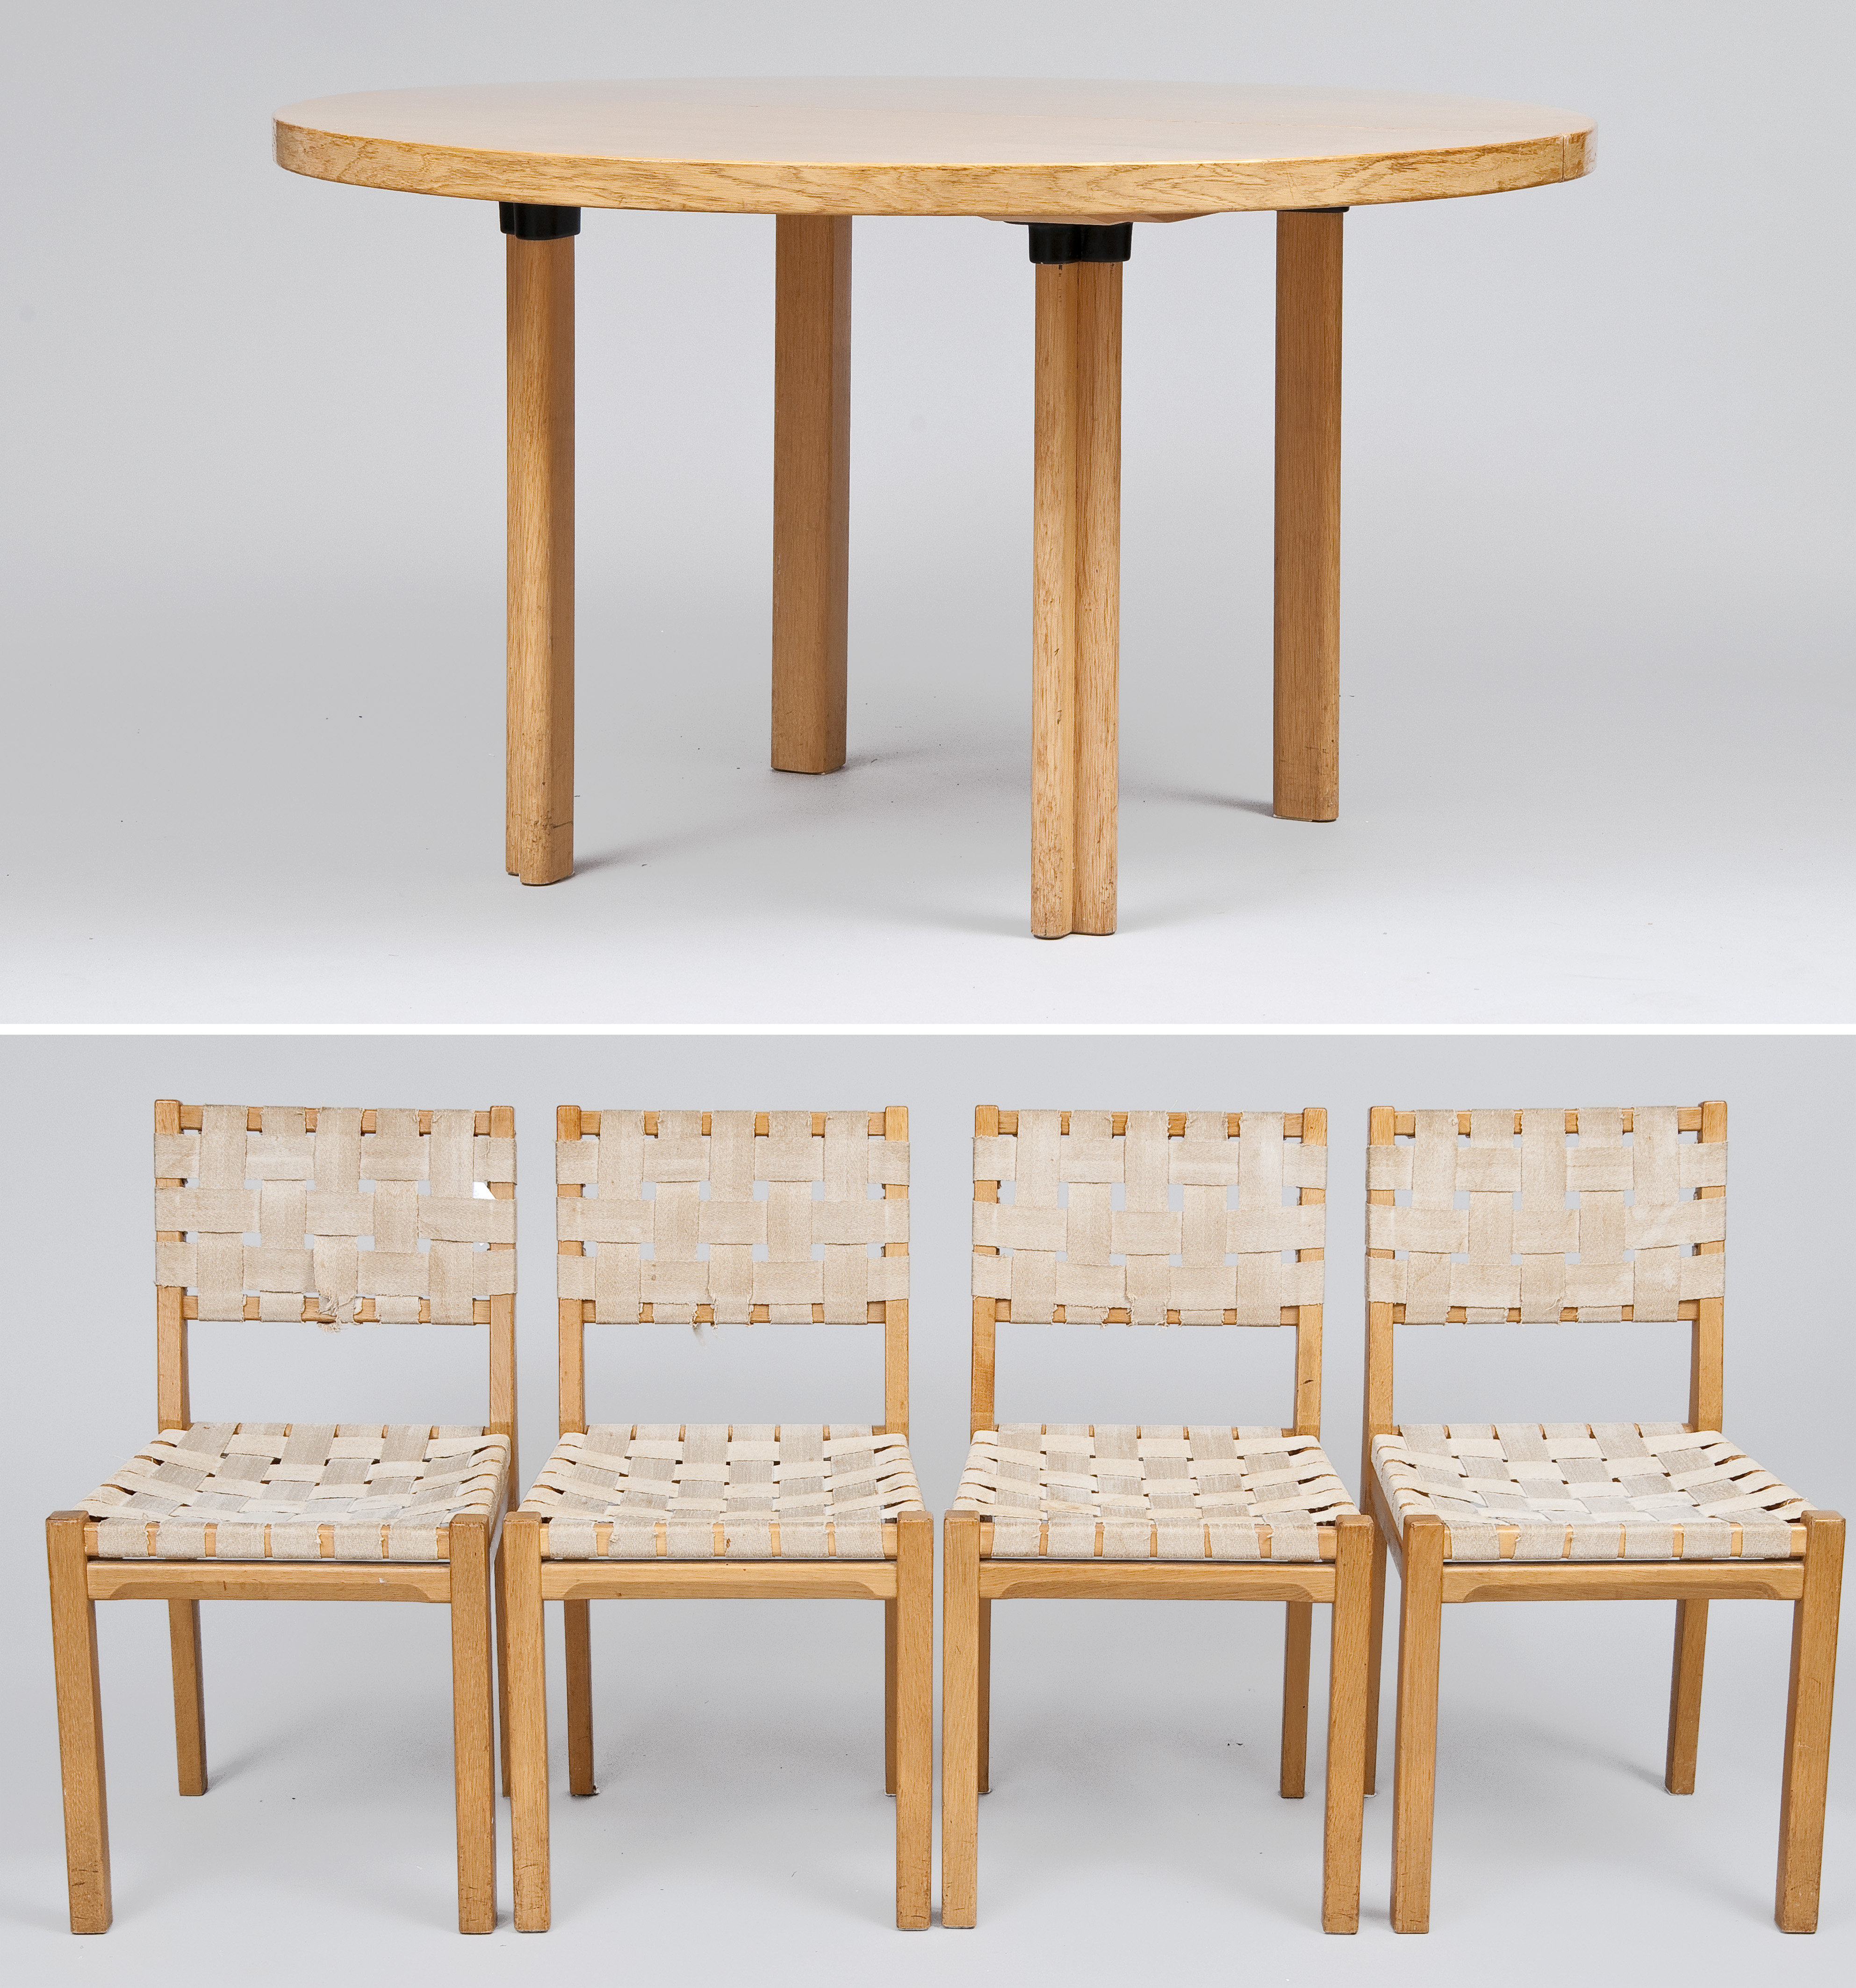 ALVAR AALTO, A TABLE AND 4 CHAIRS.